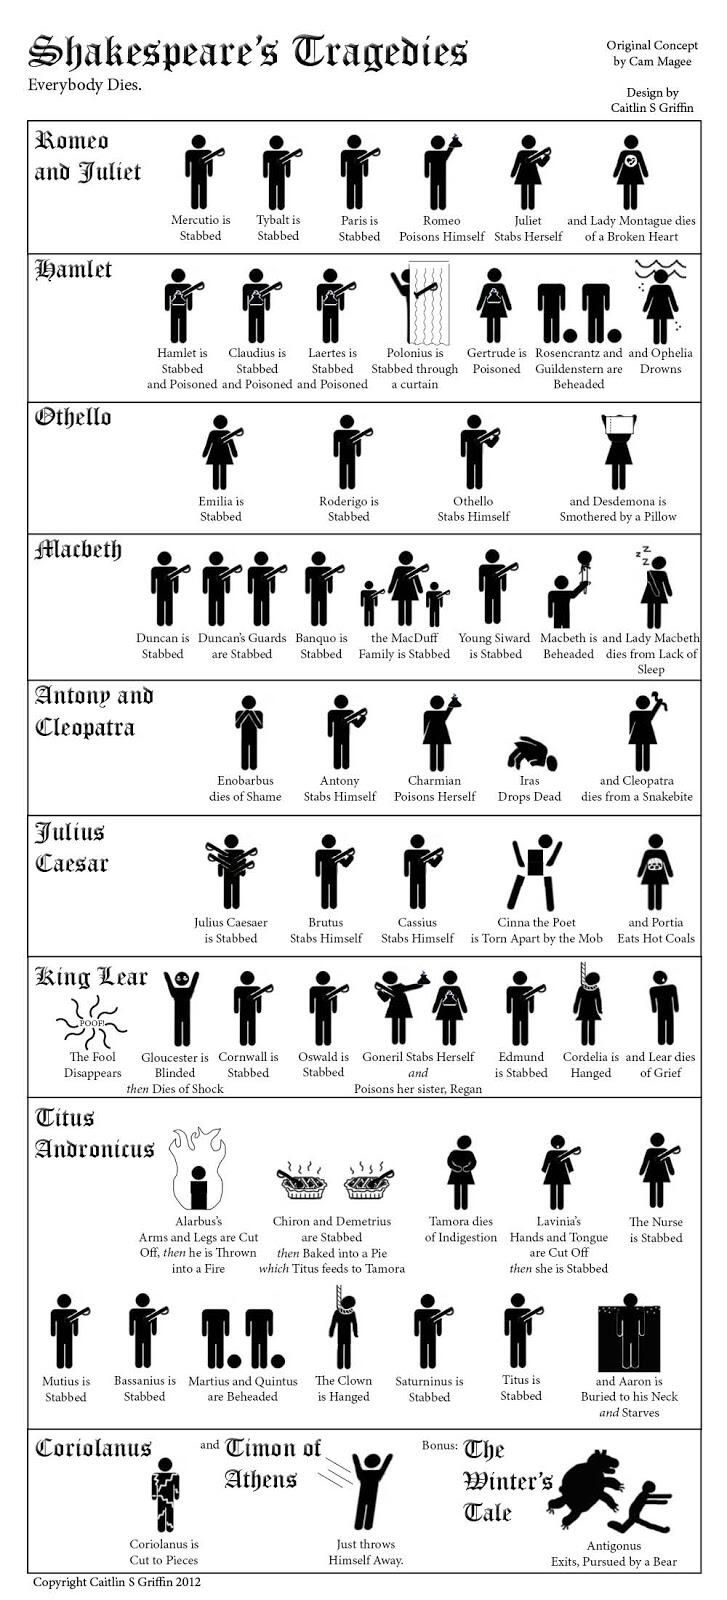 Shakespeare's Deaths and Murders [infographic] #Shakespeare #Literature #Deaths